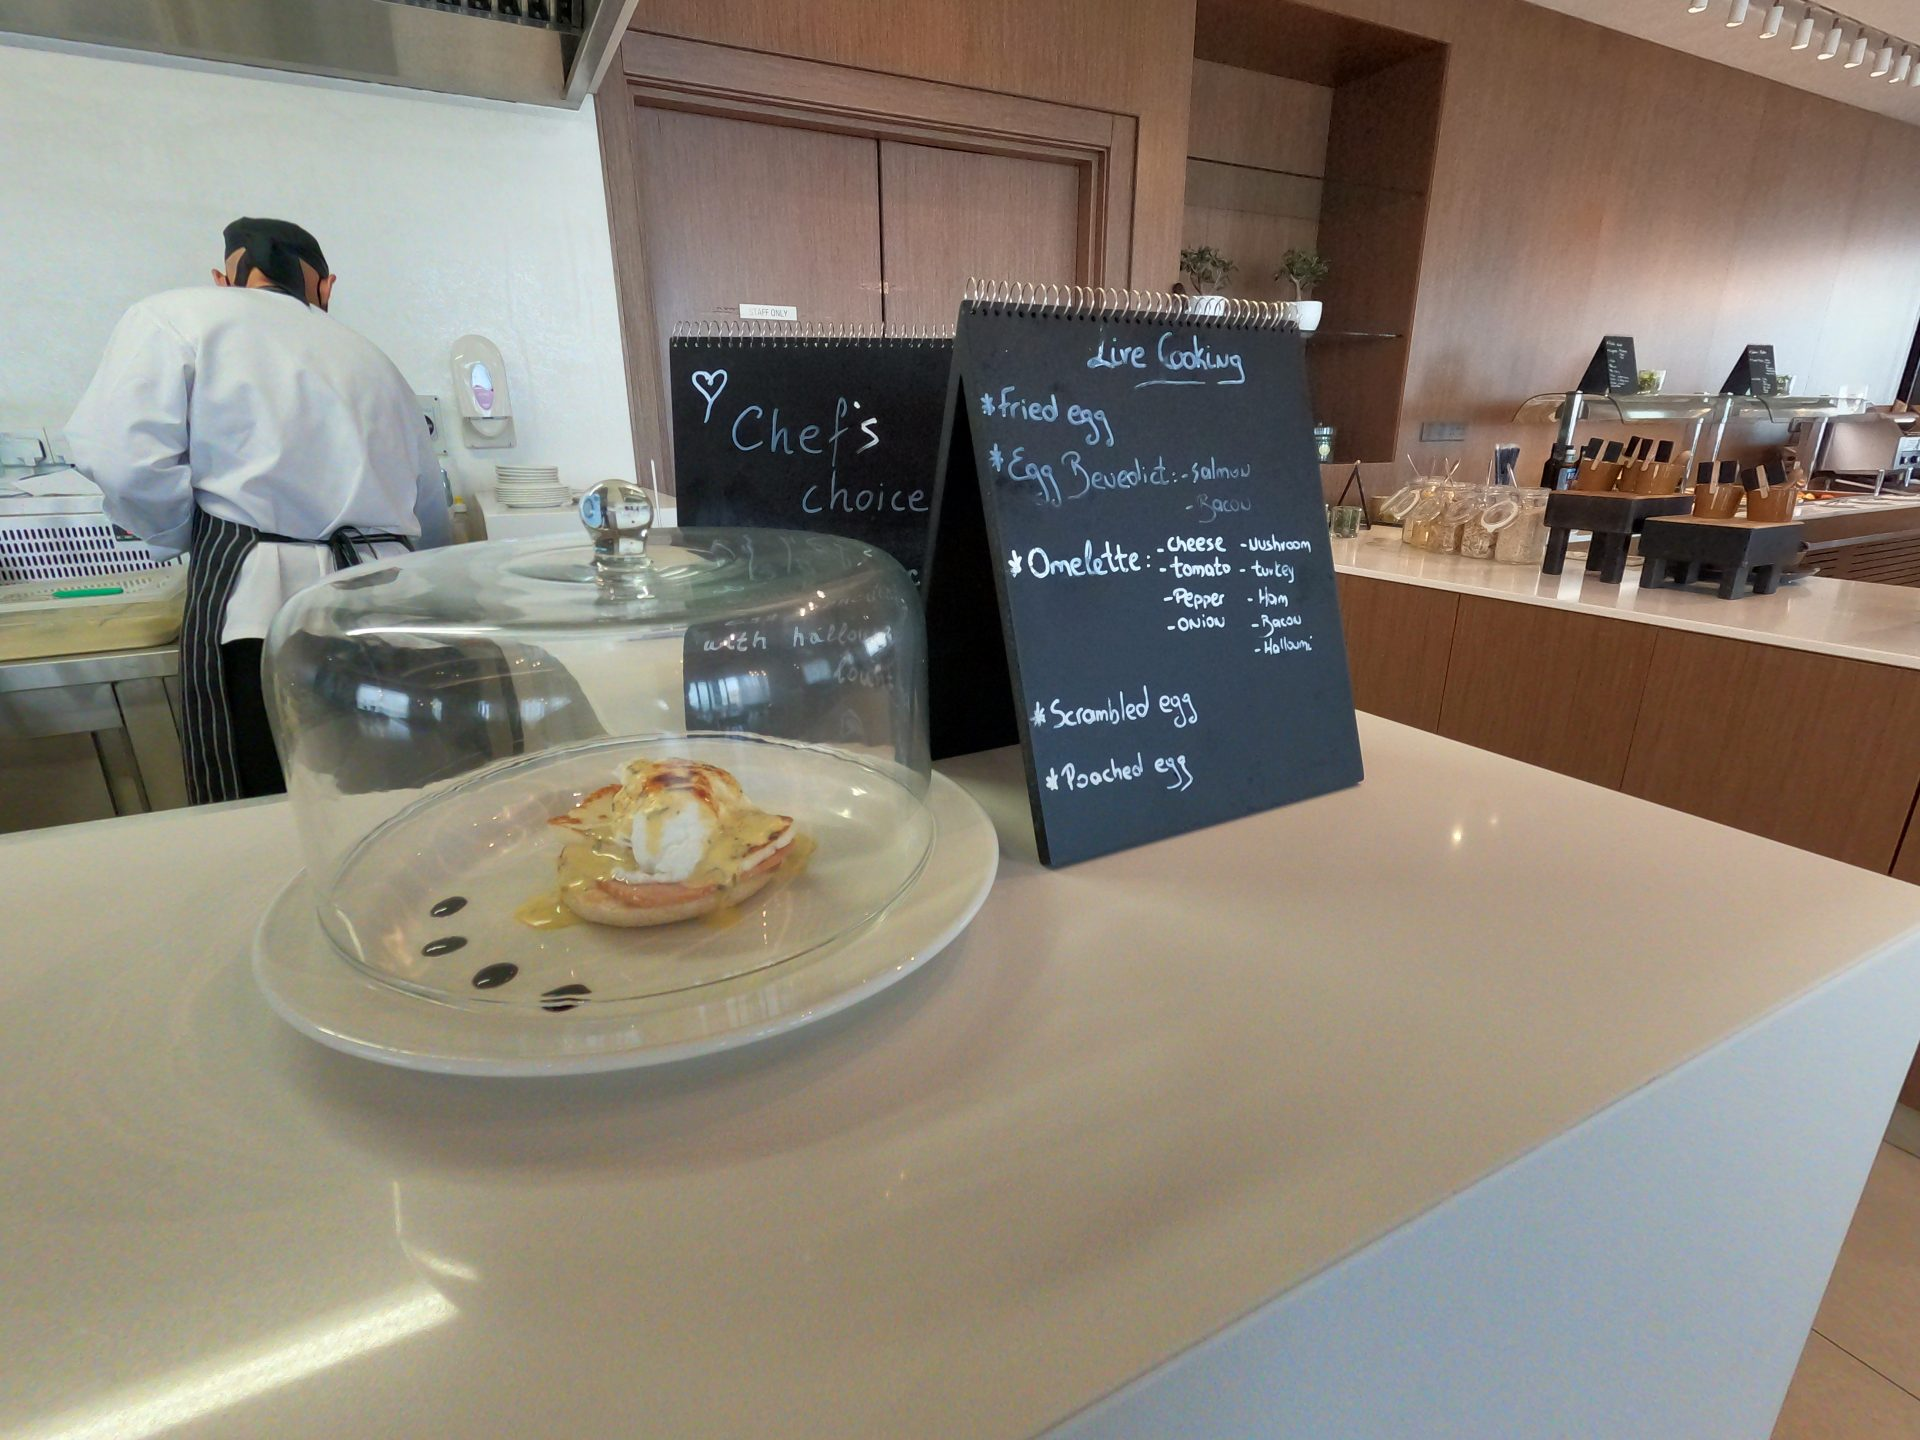 Omelette, scrambled egg, poached egg and chef's choice - Egg Benedict